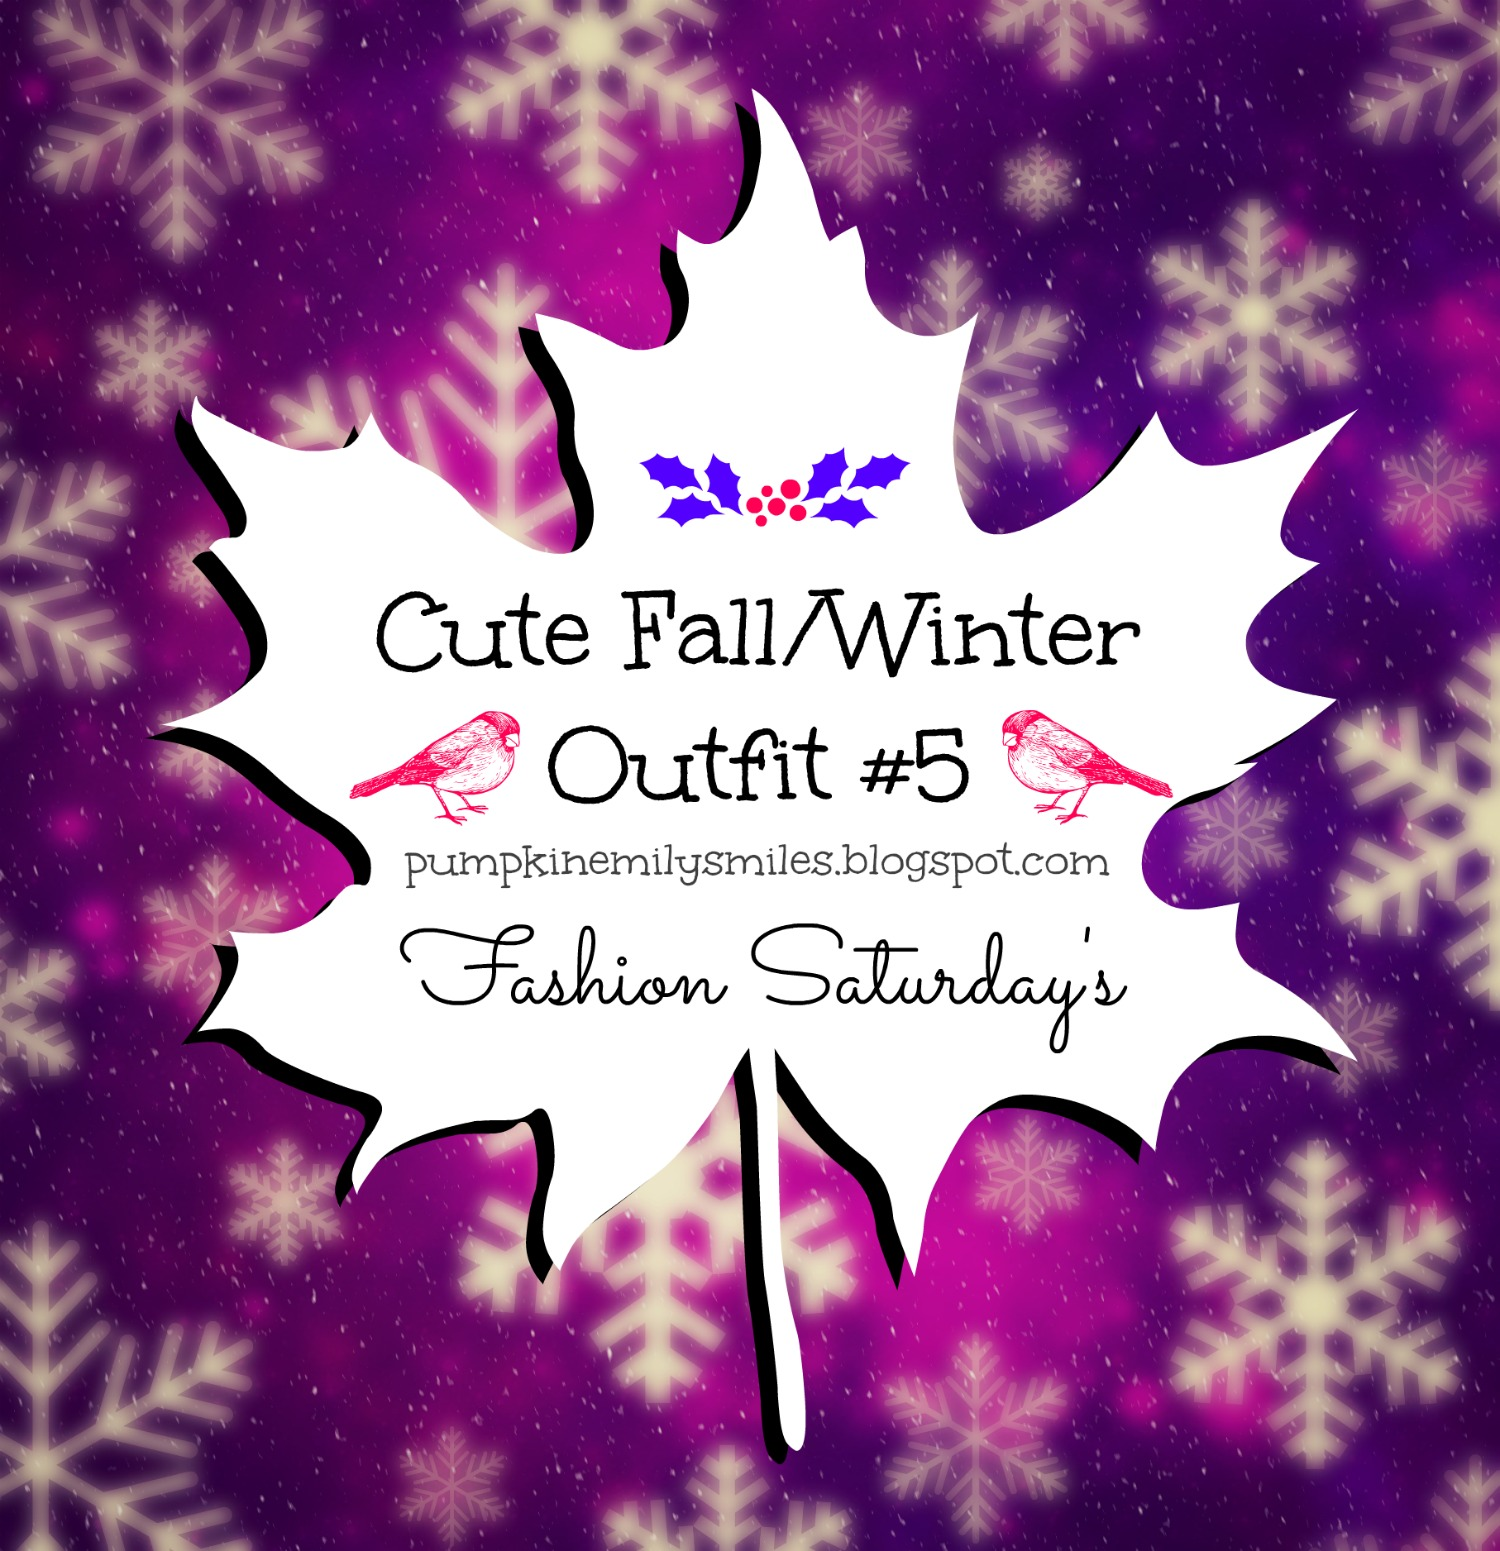 Cute Fall/Winter Outfit #5 Fashion Saturday's